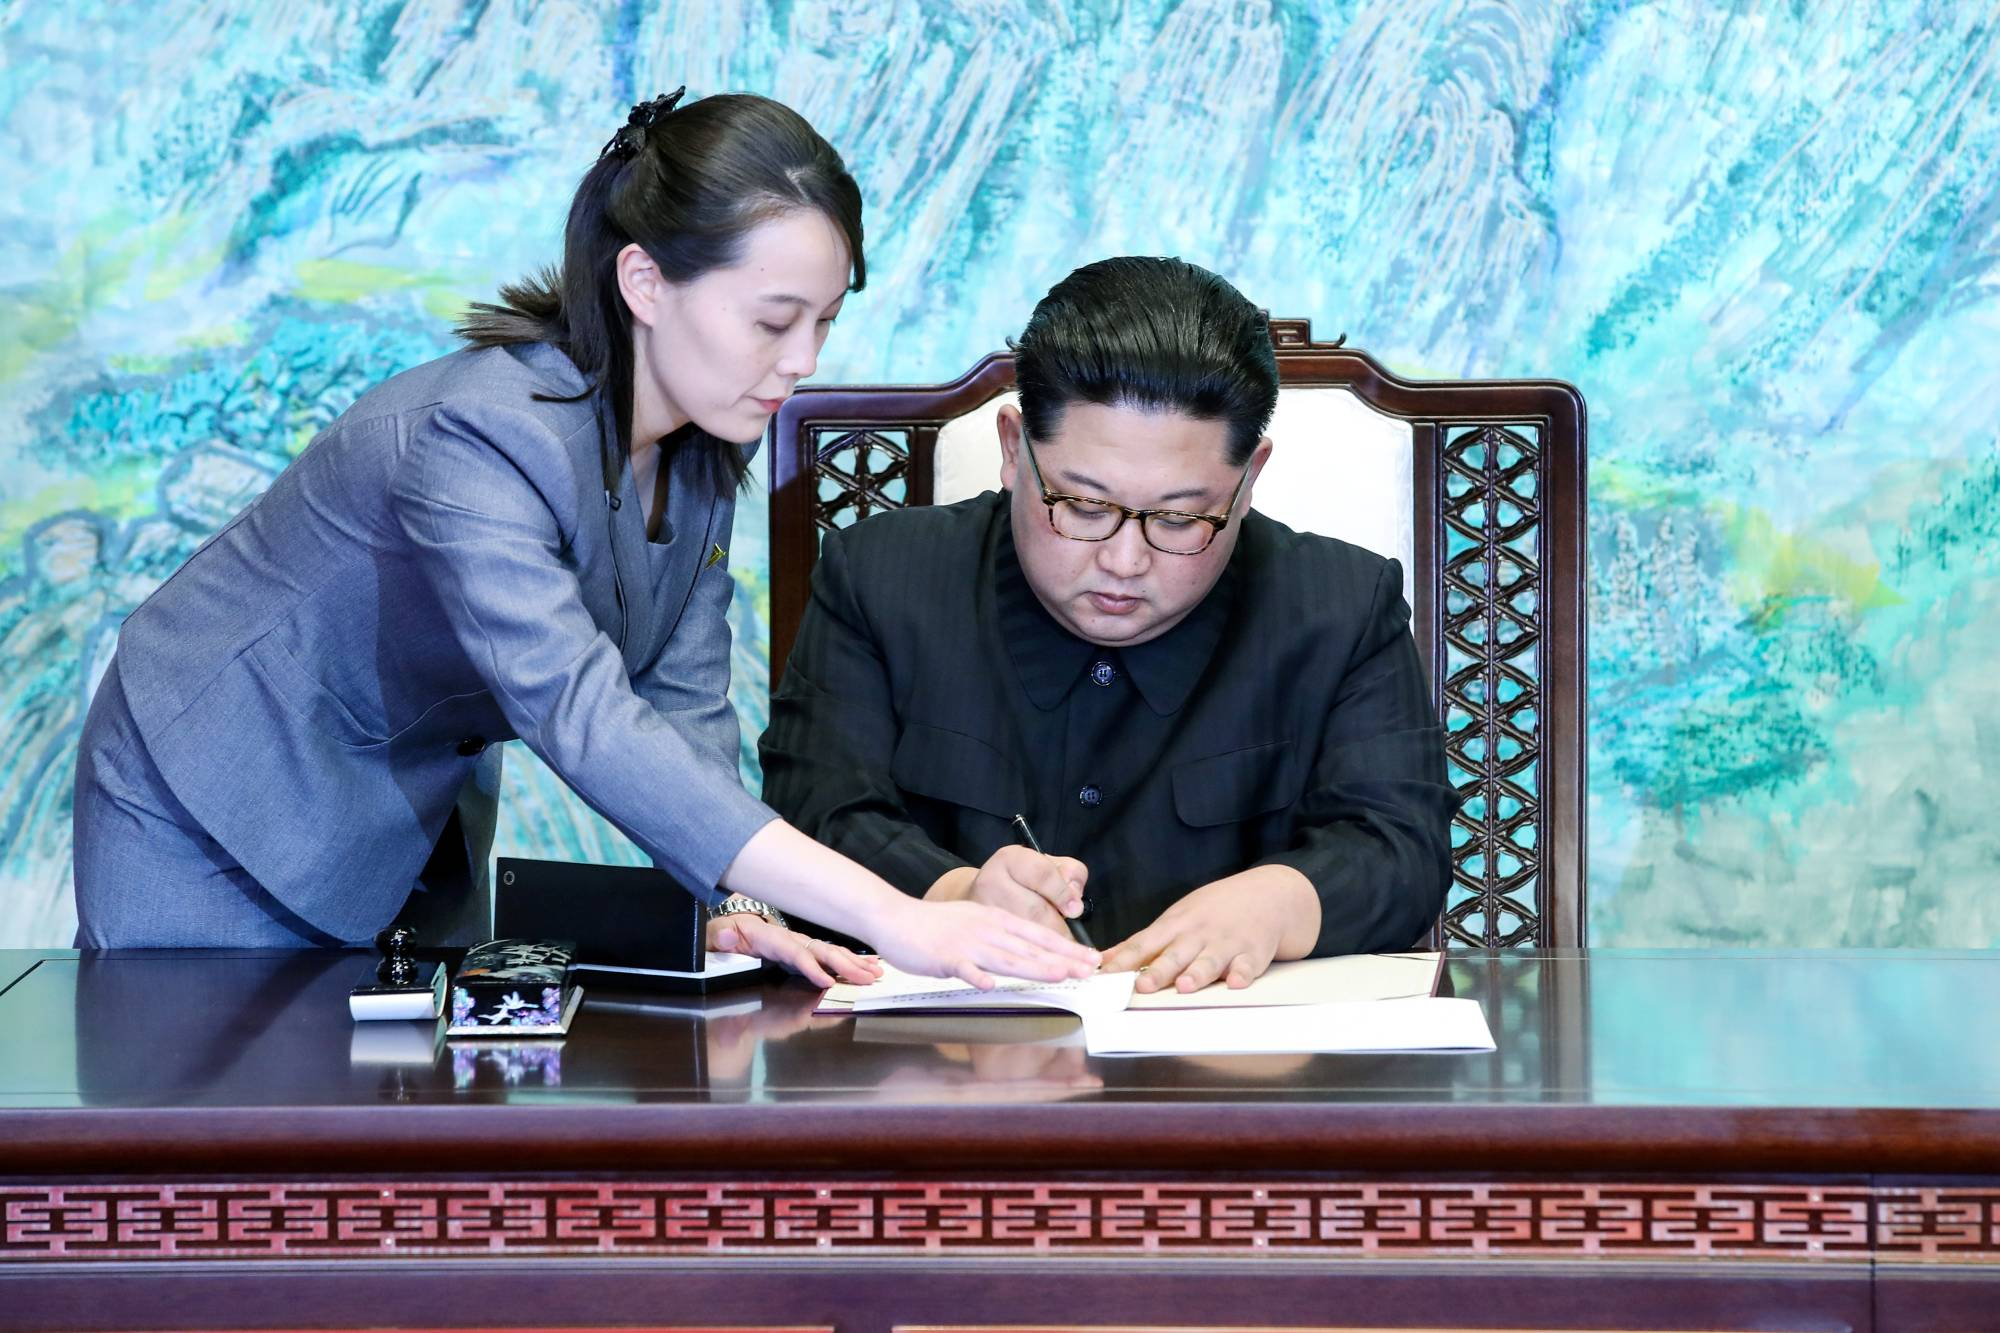 North Korean leader Kim Jong Un is assisted by his sister, Kim Yo Jong, as he signs documents at the truce village of Panmunjom, South Korea, inside the Demilitarized Zone separating the two Koreas in April 2018. | KOREA SUMMIT PRESS POOL / VIA REUTERS